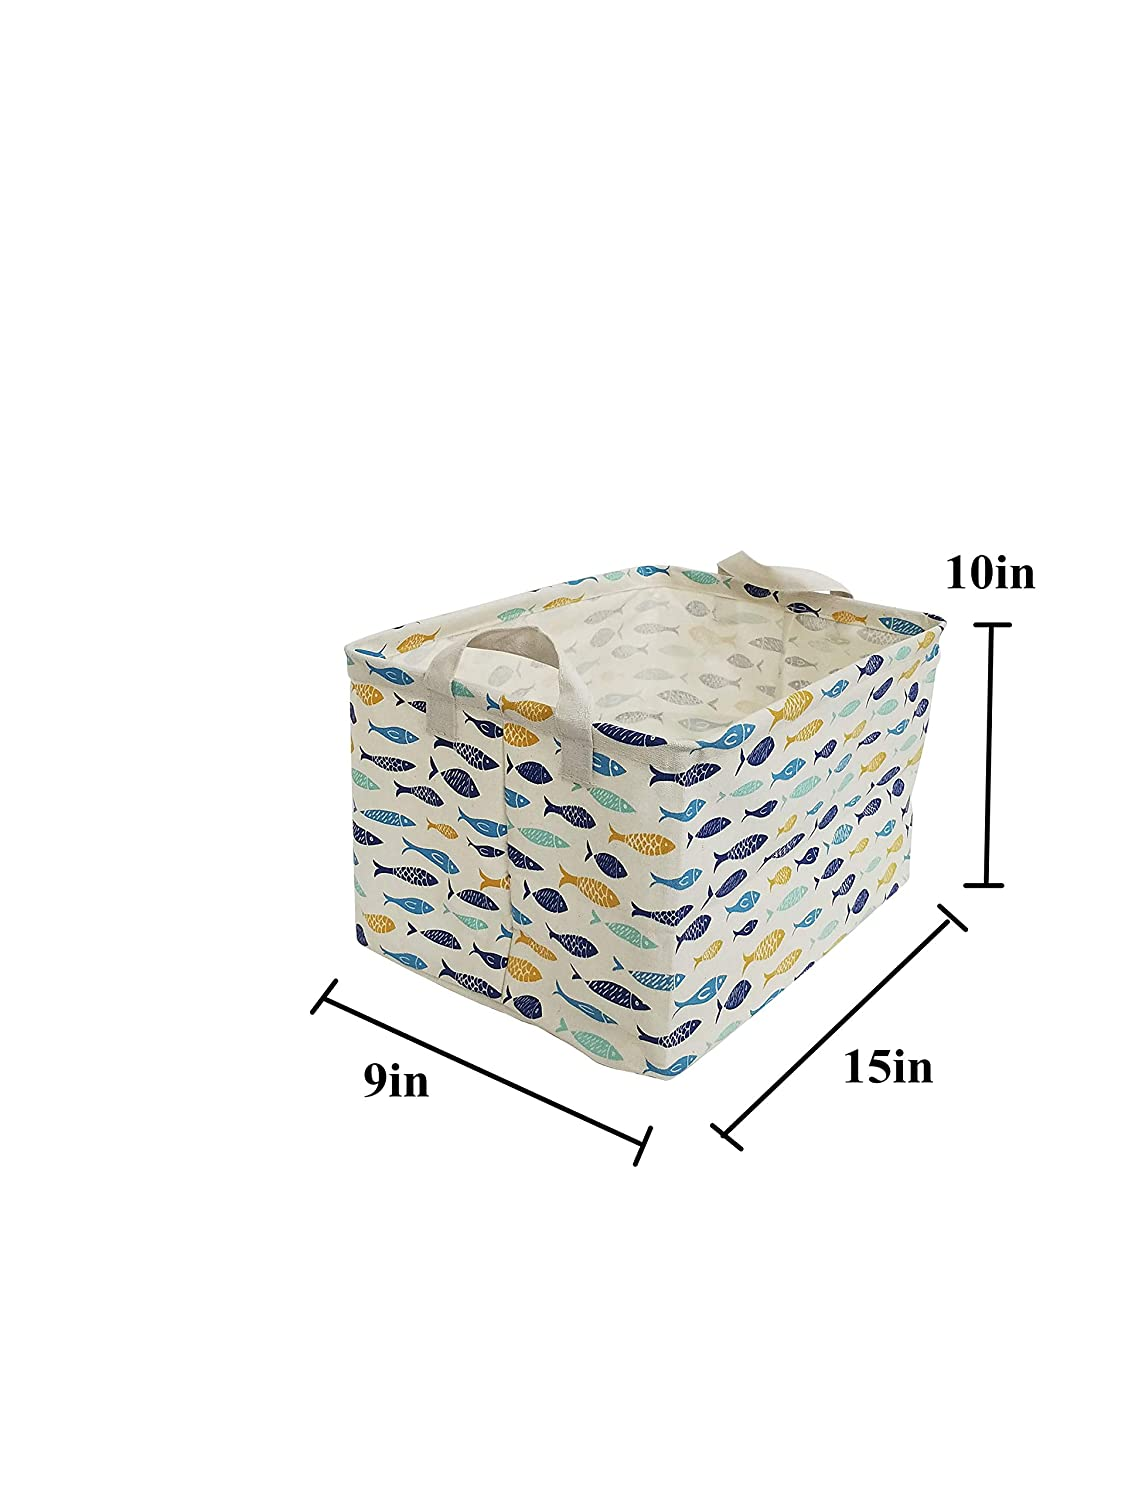 ESSME Square Storage Bin,Cotton Fabric Laundry Baskets,Collapsible Waterproof Toy Storage Bin with Handles for Family Storage,Shelf Baskets 13/×13 inches Cactus